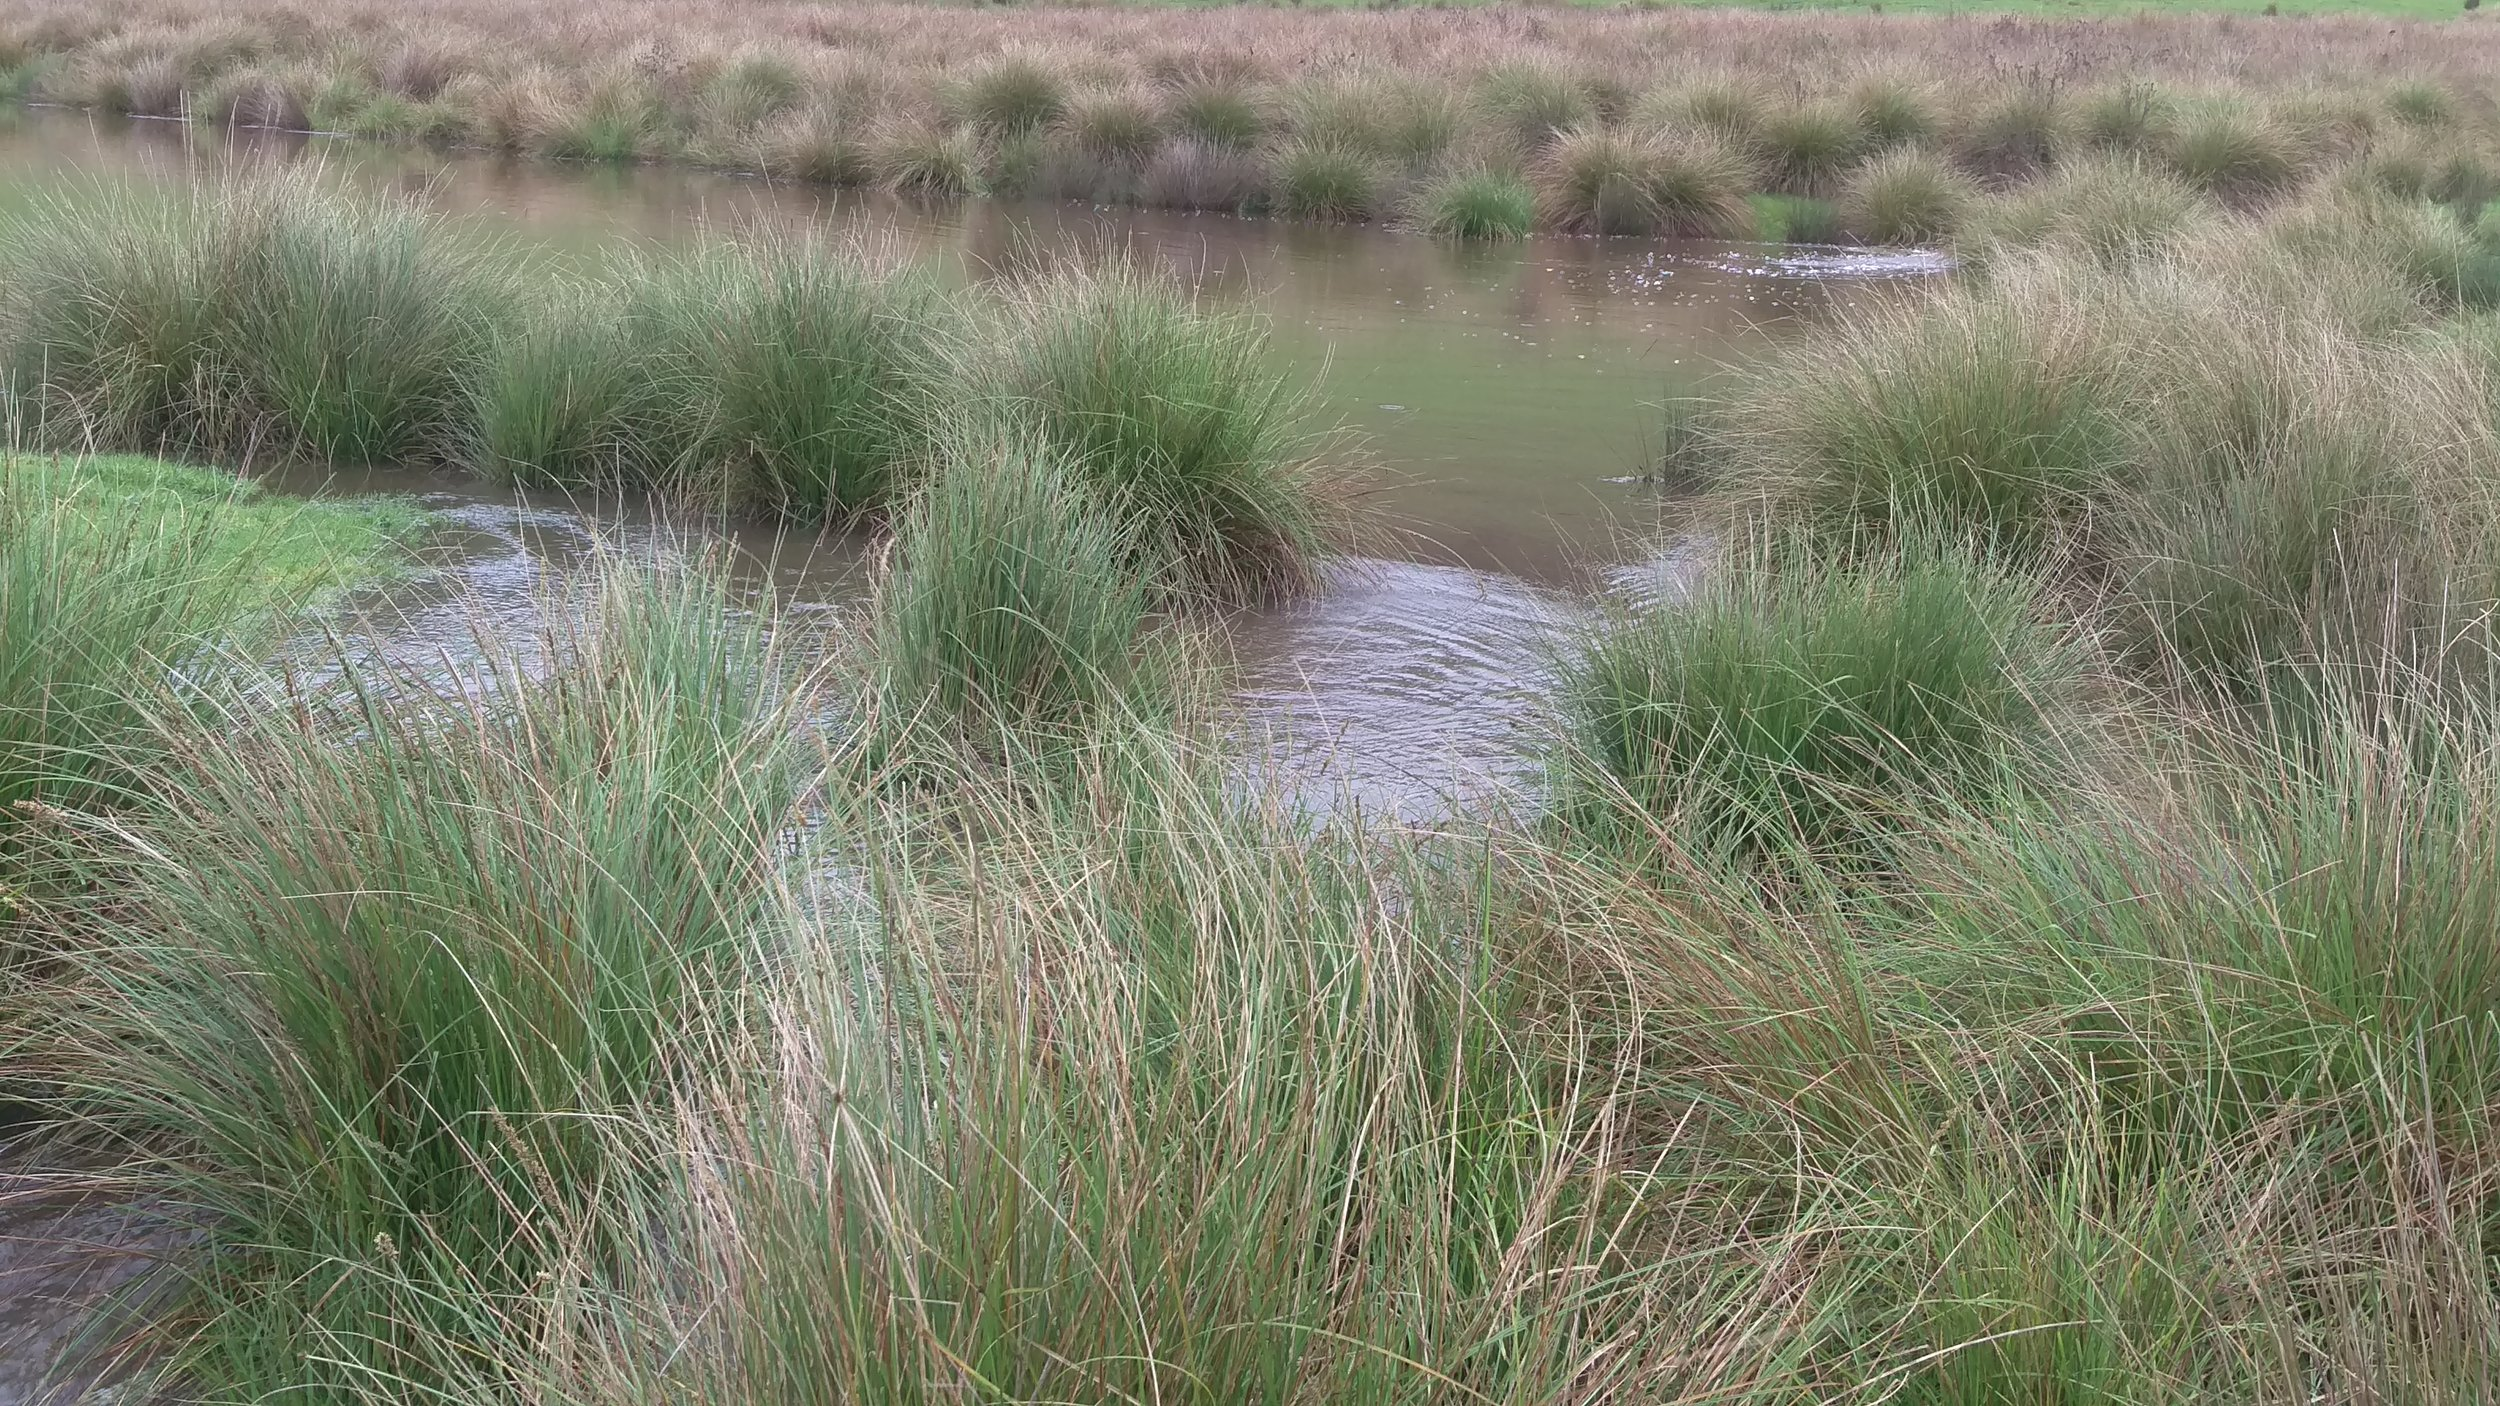 Carex slowing down the potentially eroding power of water